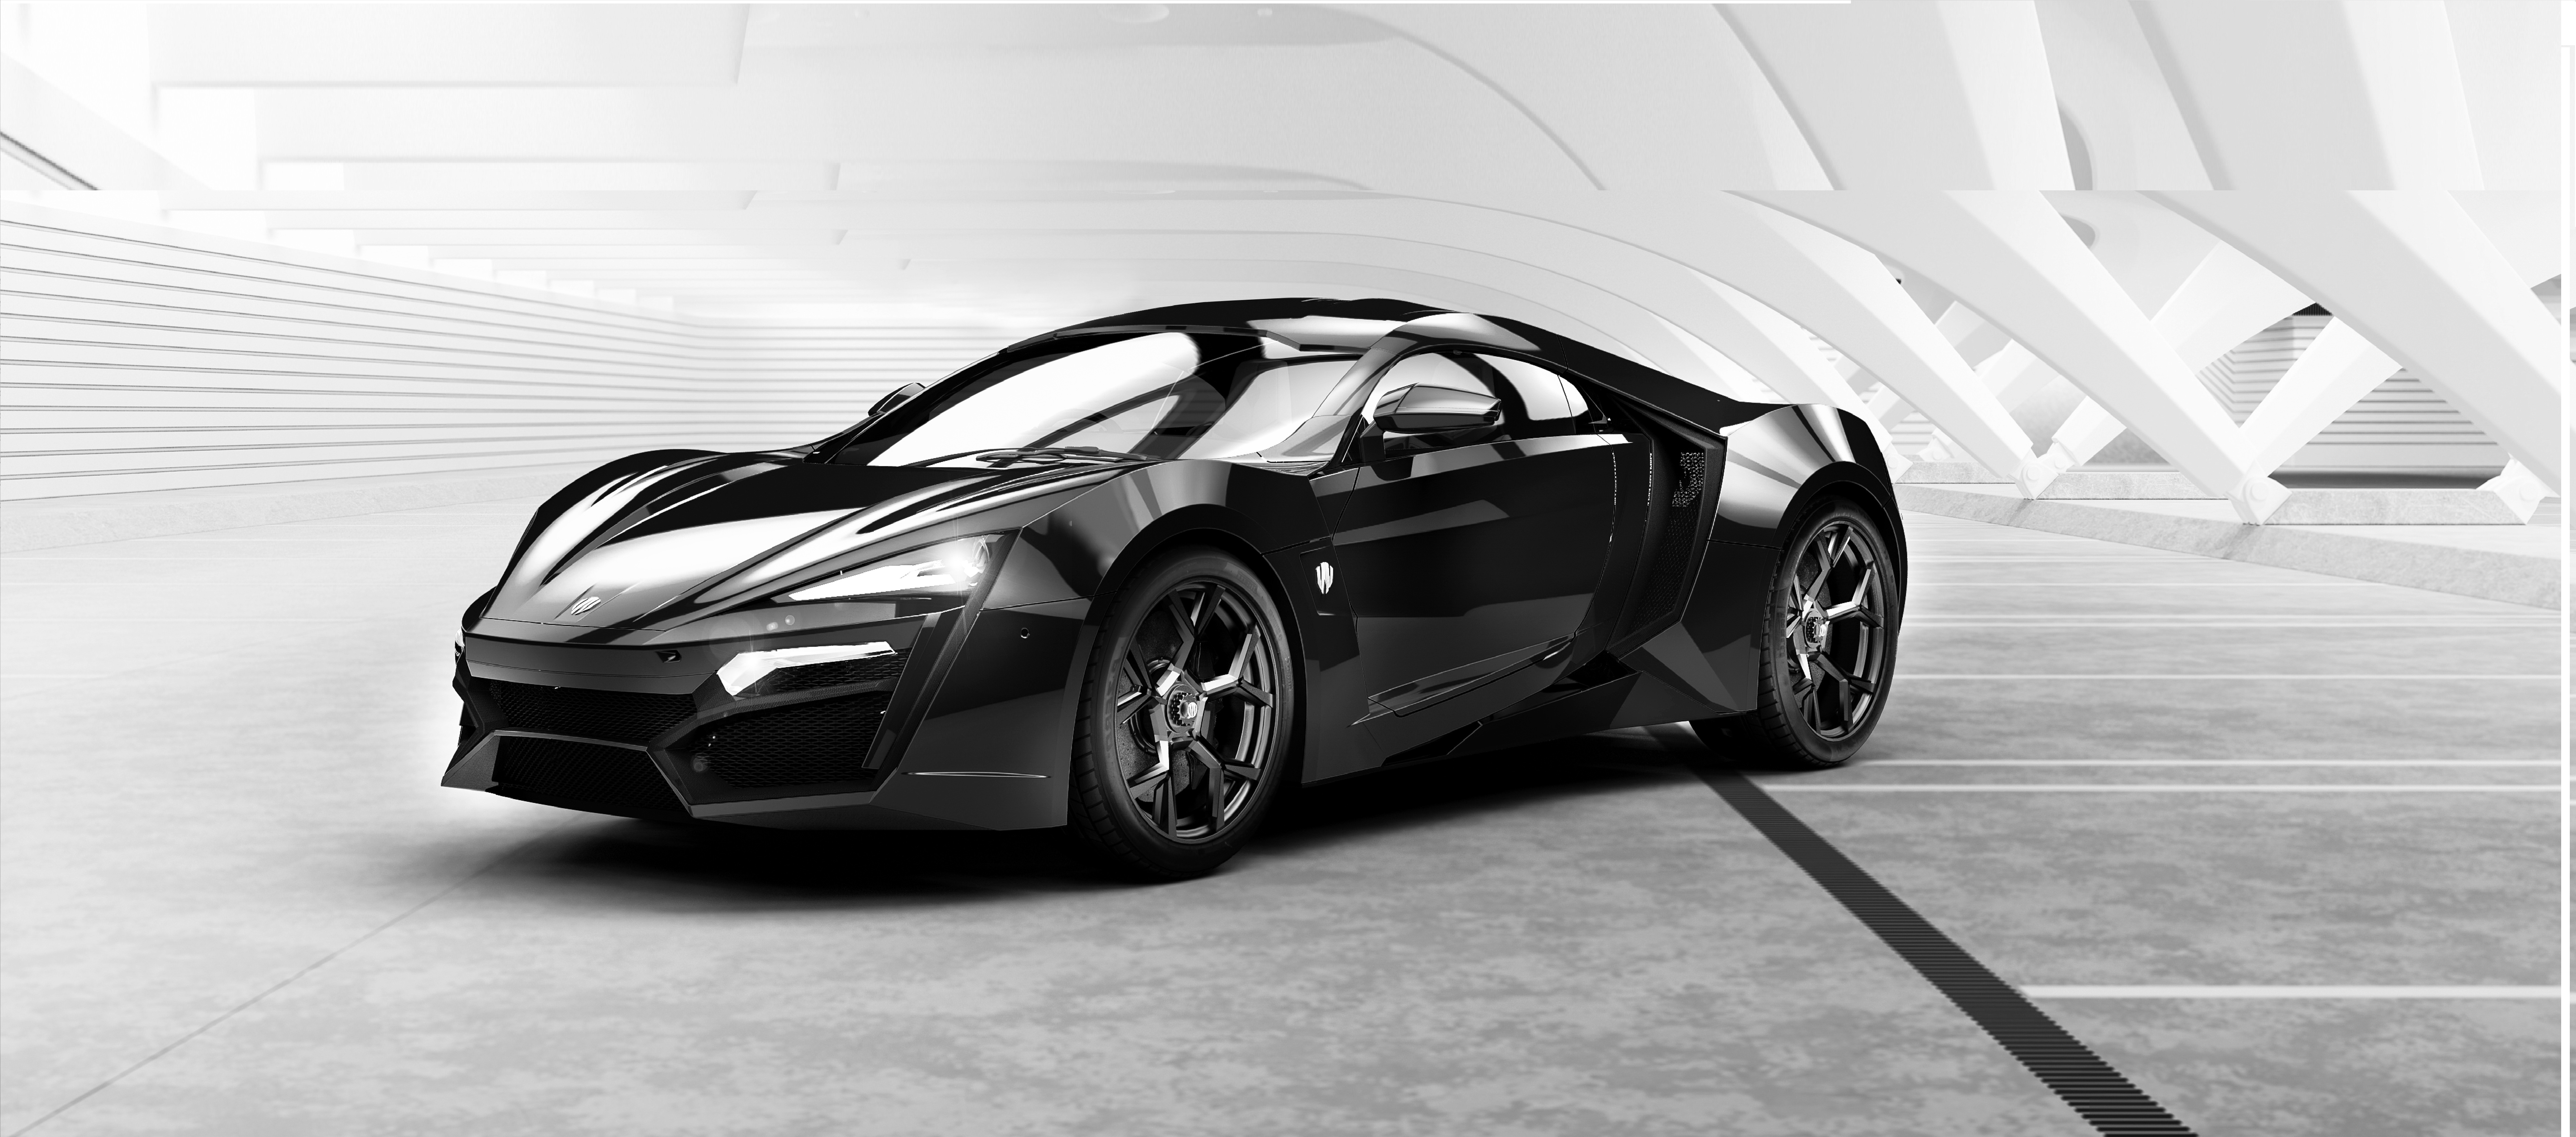 2015 lykan hypersport review price specs for W motors lykan hypersport price